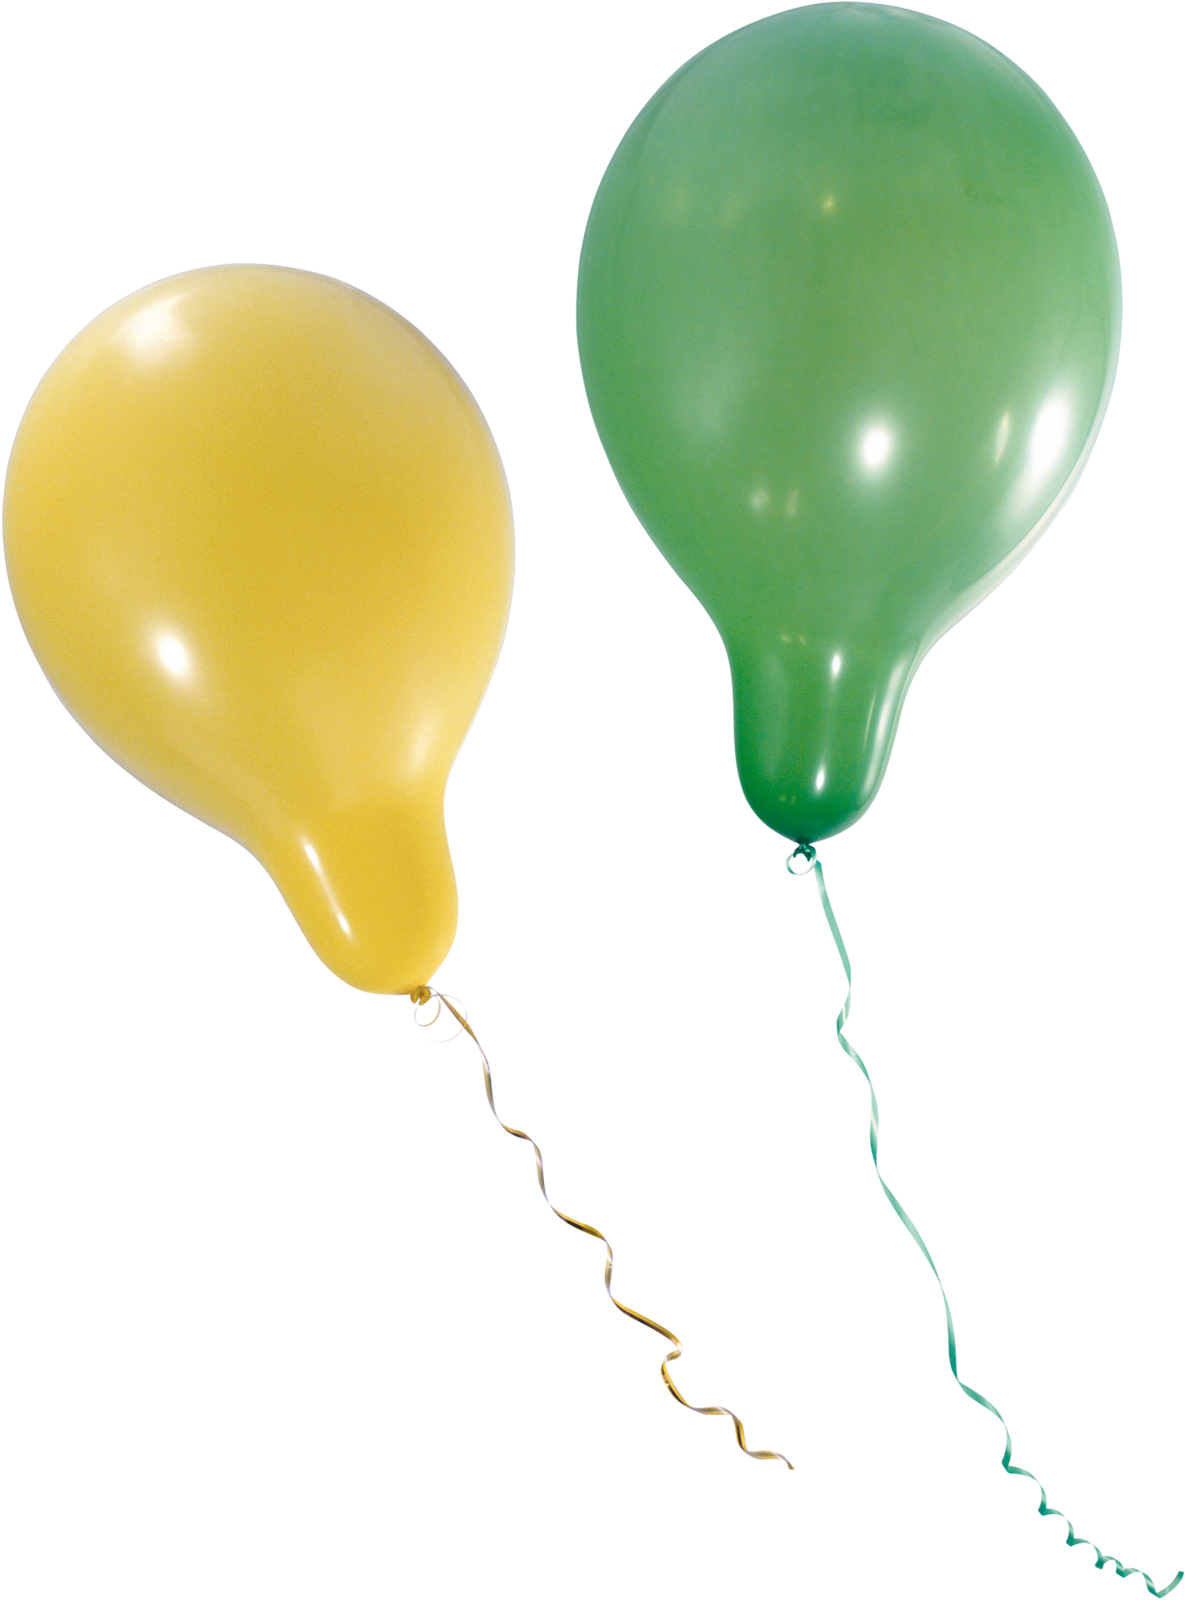 Balloon Photoshop PSD